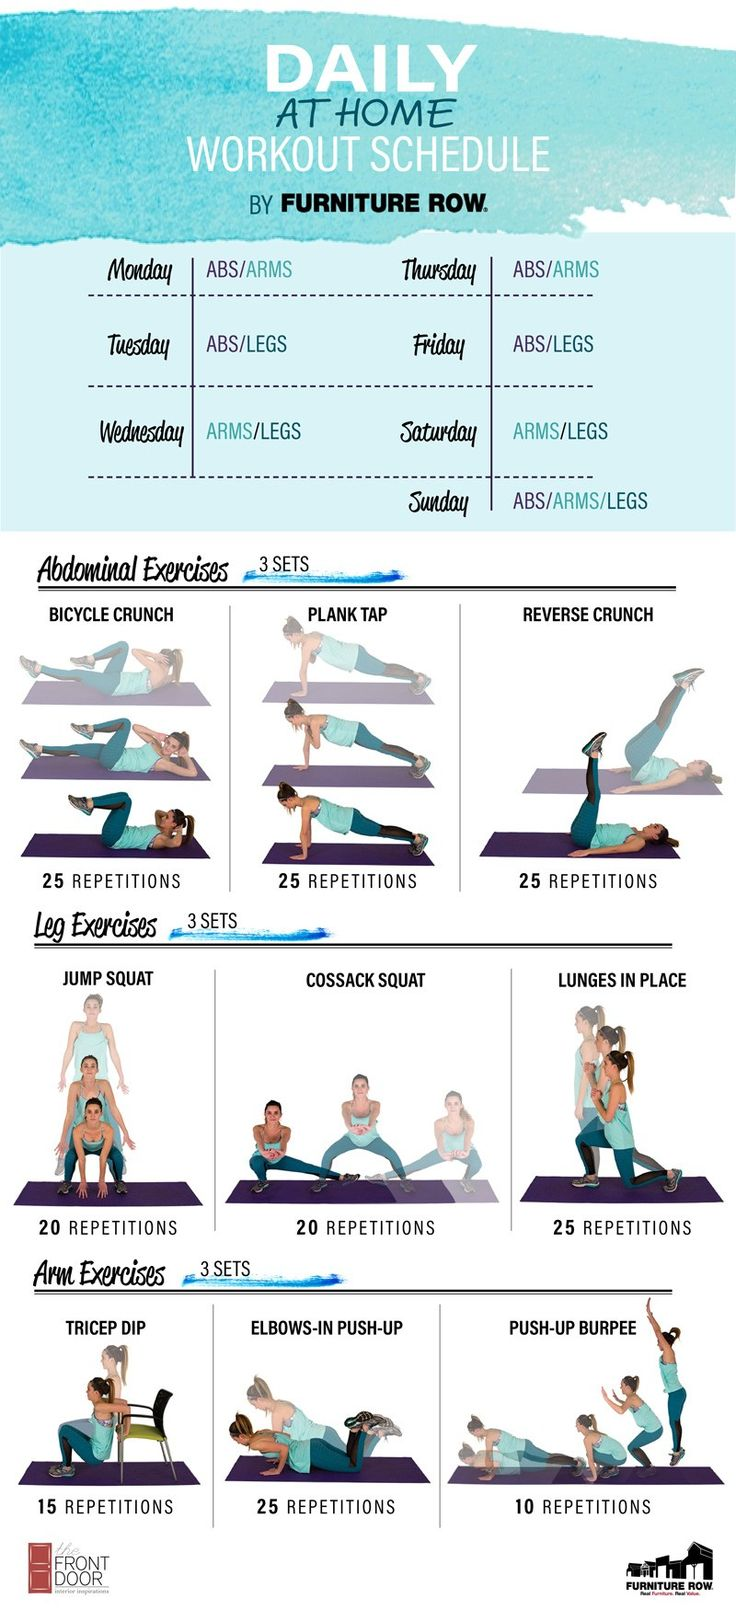 Fulfill your 2017 new year's resolution with easy at-home workouts for your abs, arms, and legs. Start getting toned with our work out from home schedule!